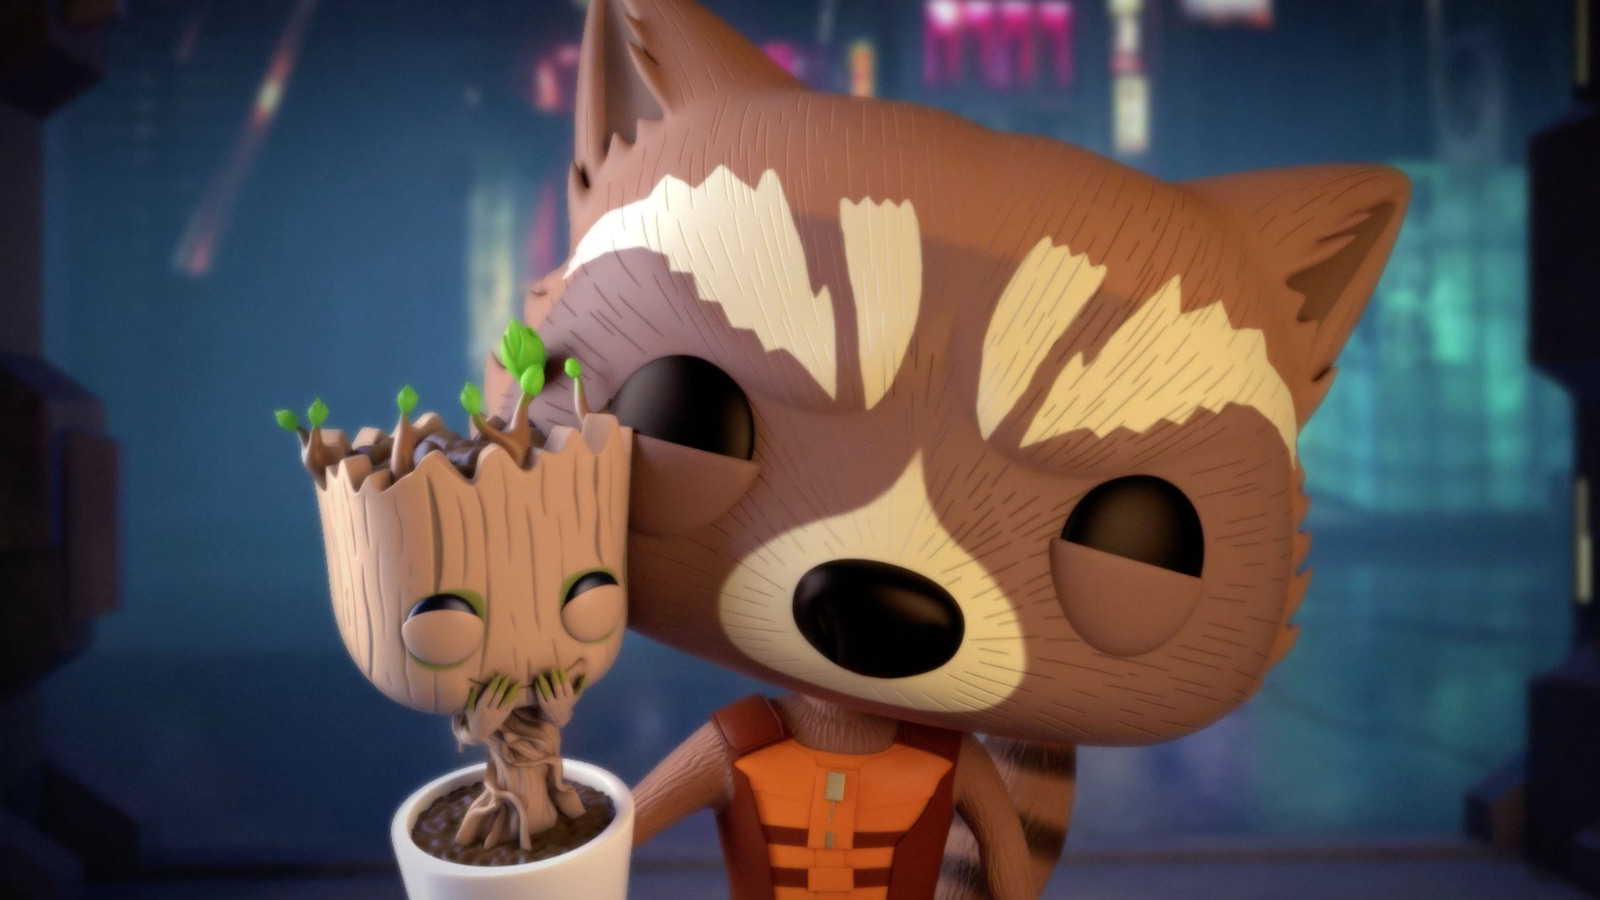 rocket-and-baby-groot-guadians-of-the-galaxy-artwork-sd.jpg